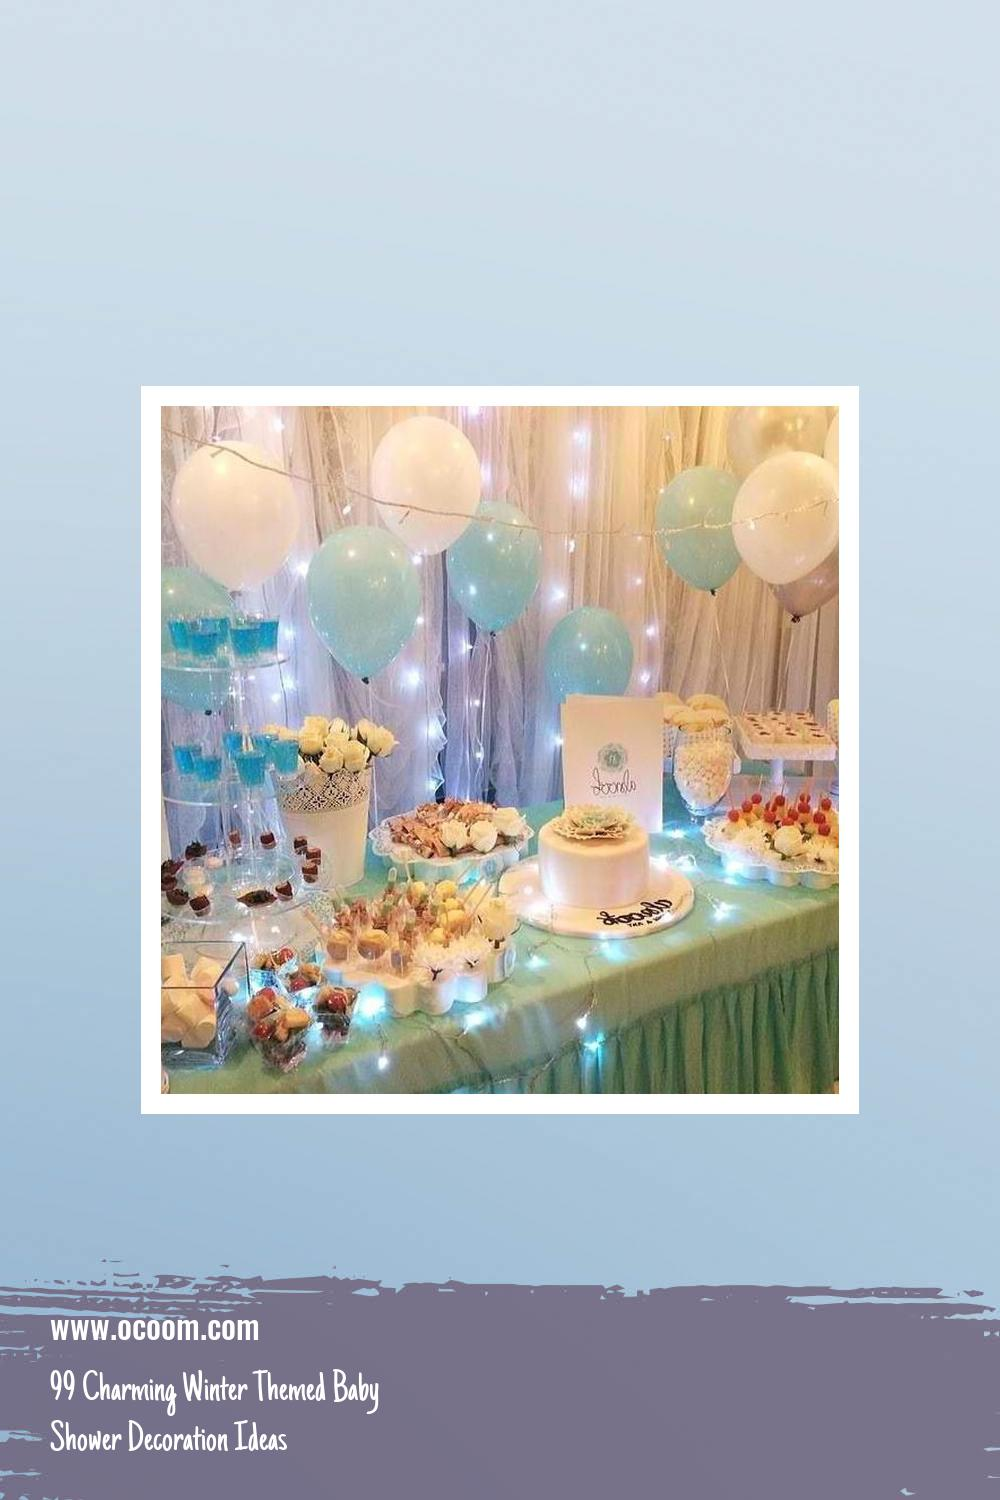 99 Charming Winter Themed Baby Shower Decoration Ideas 39